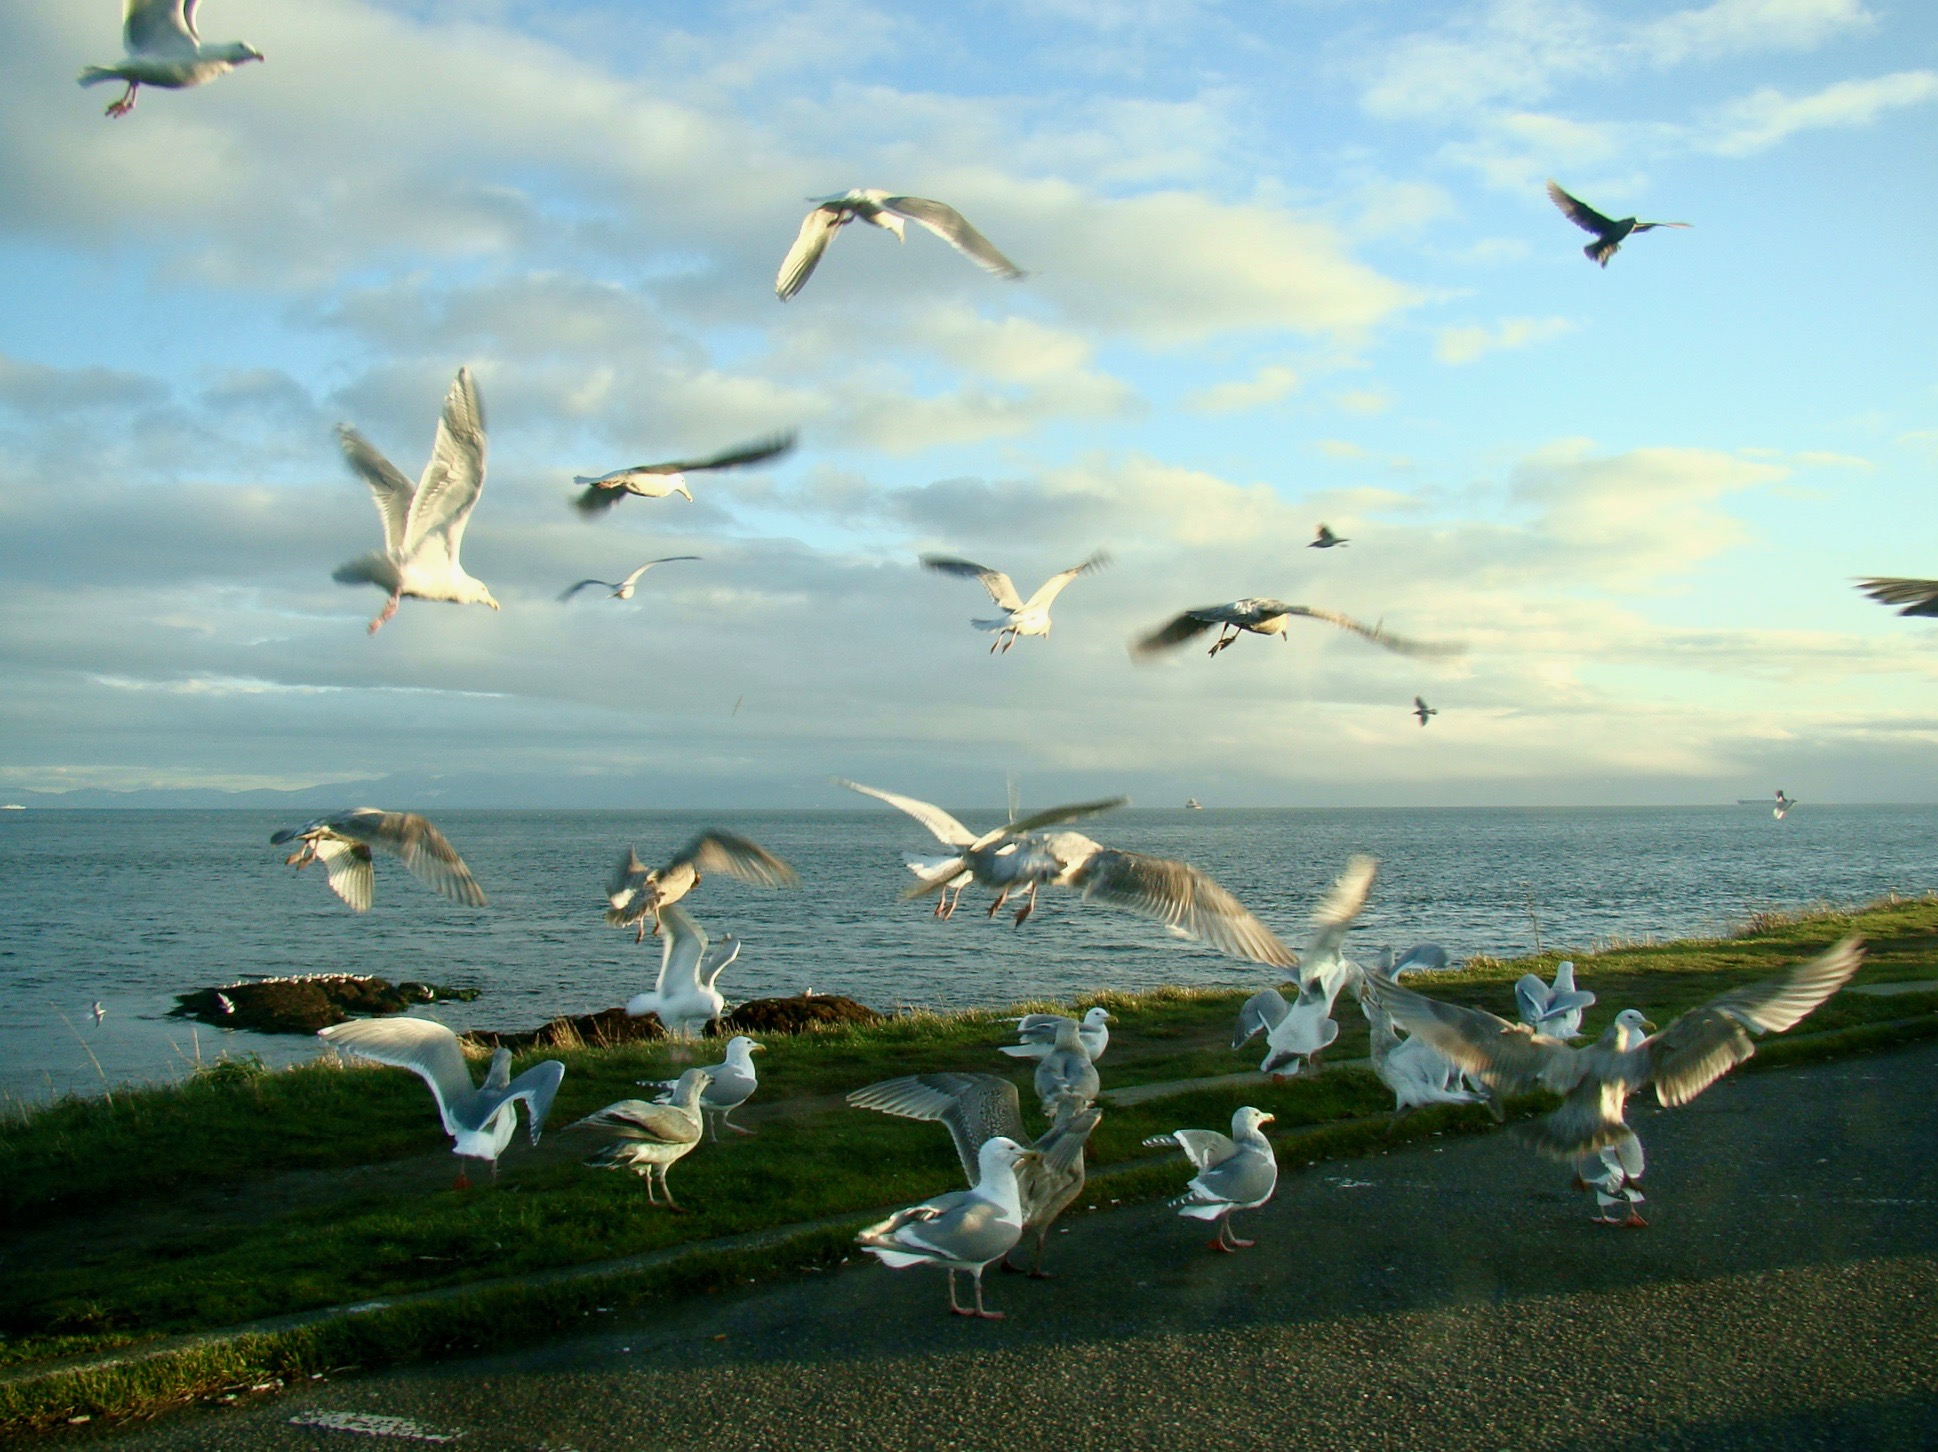 Seagulls at Clover Point